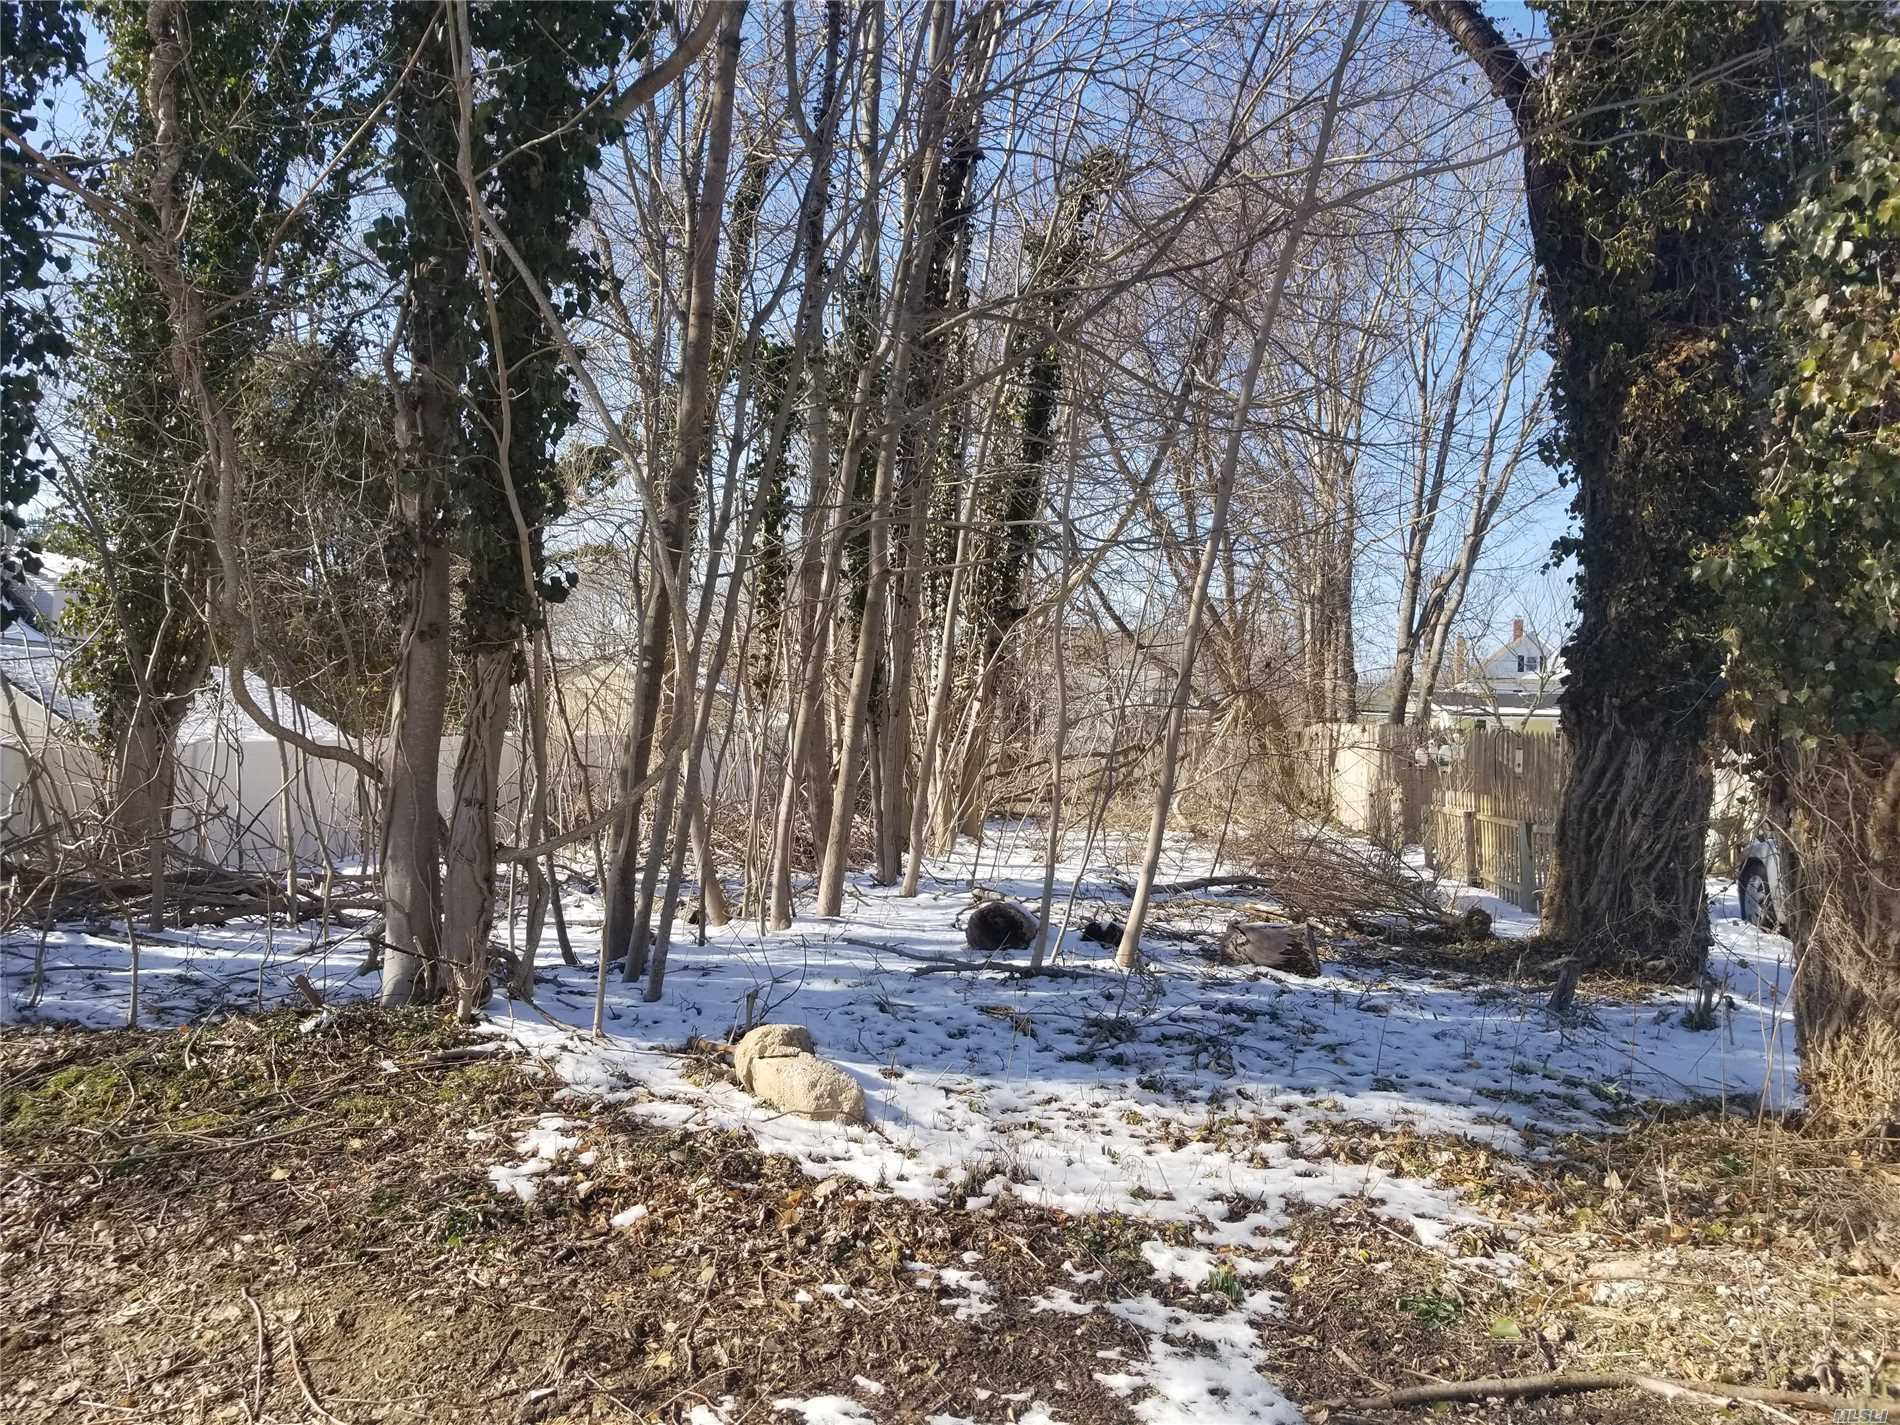 Lovely lightly wooded Greenport lot waiting for you to build your dream home or your weekend getaway. Greenport Utilities, Public Water And Sewers. Low taxes. Don't hesitate! Will not last!